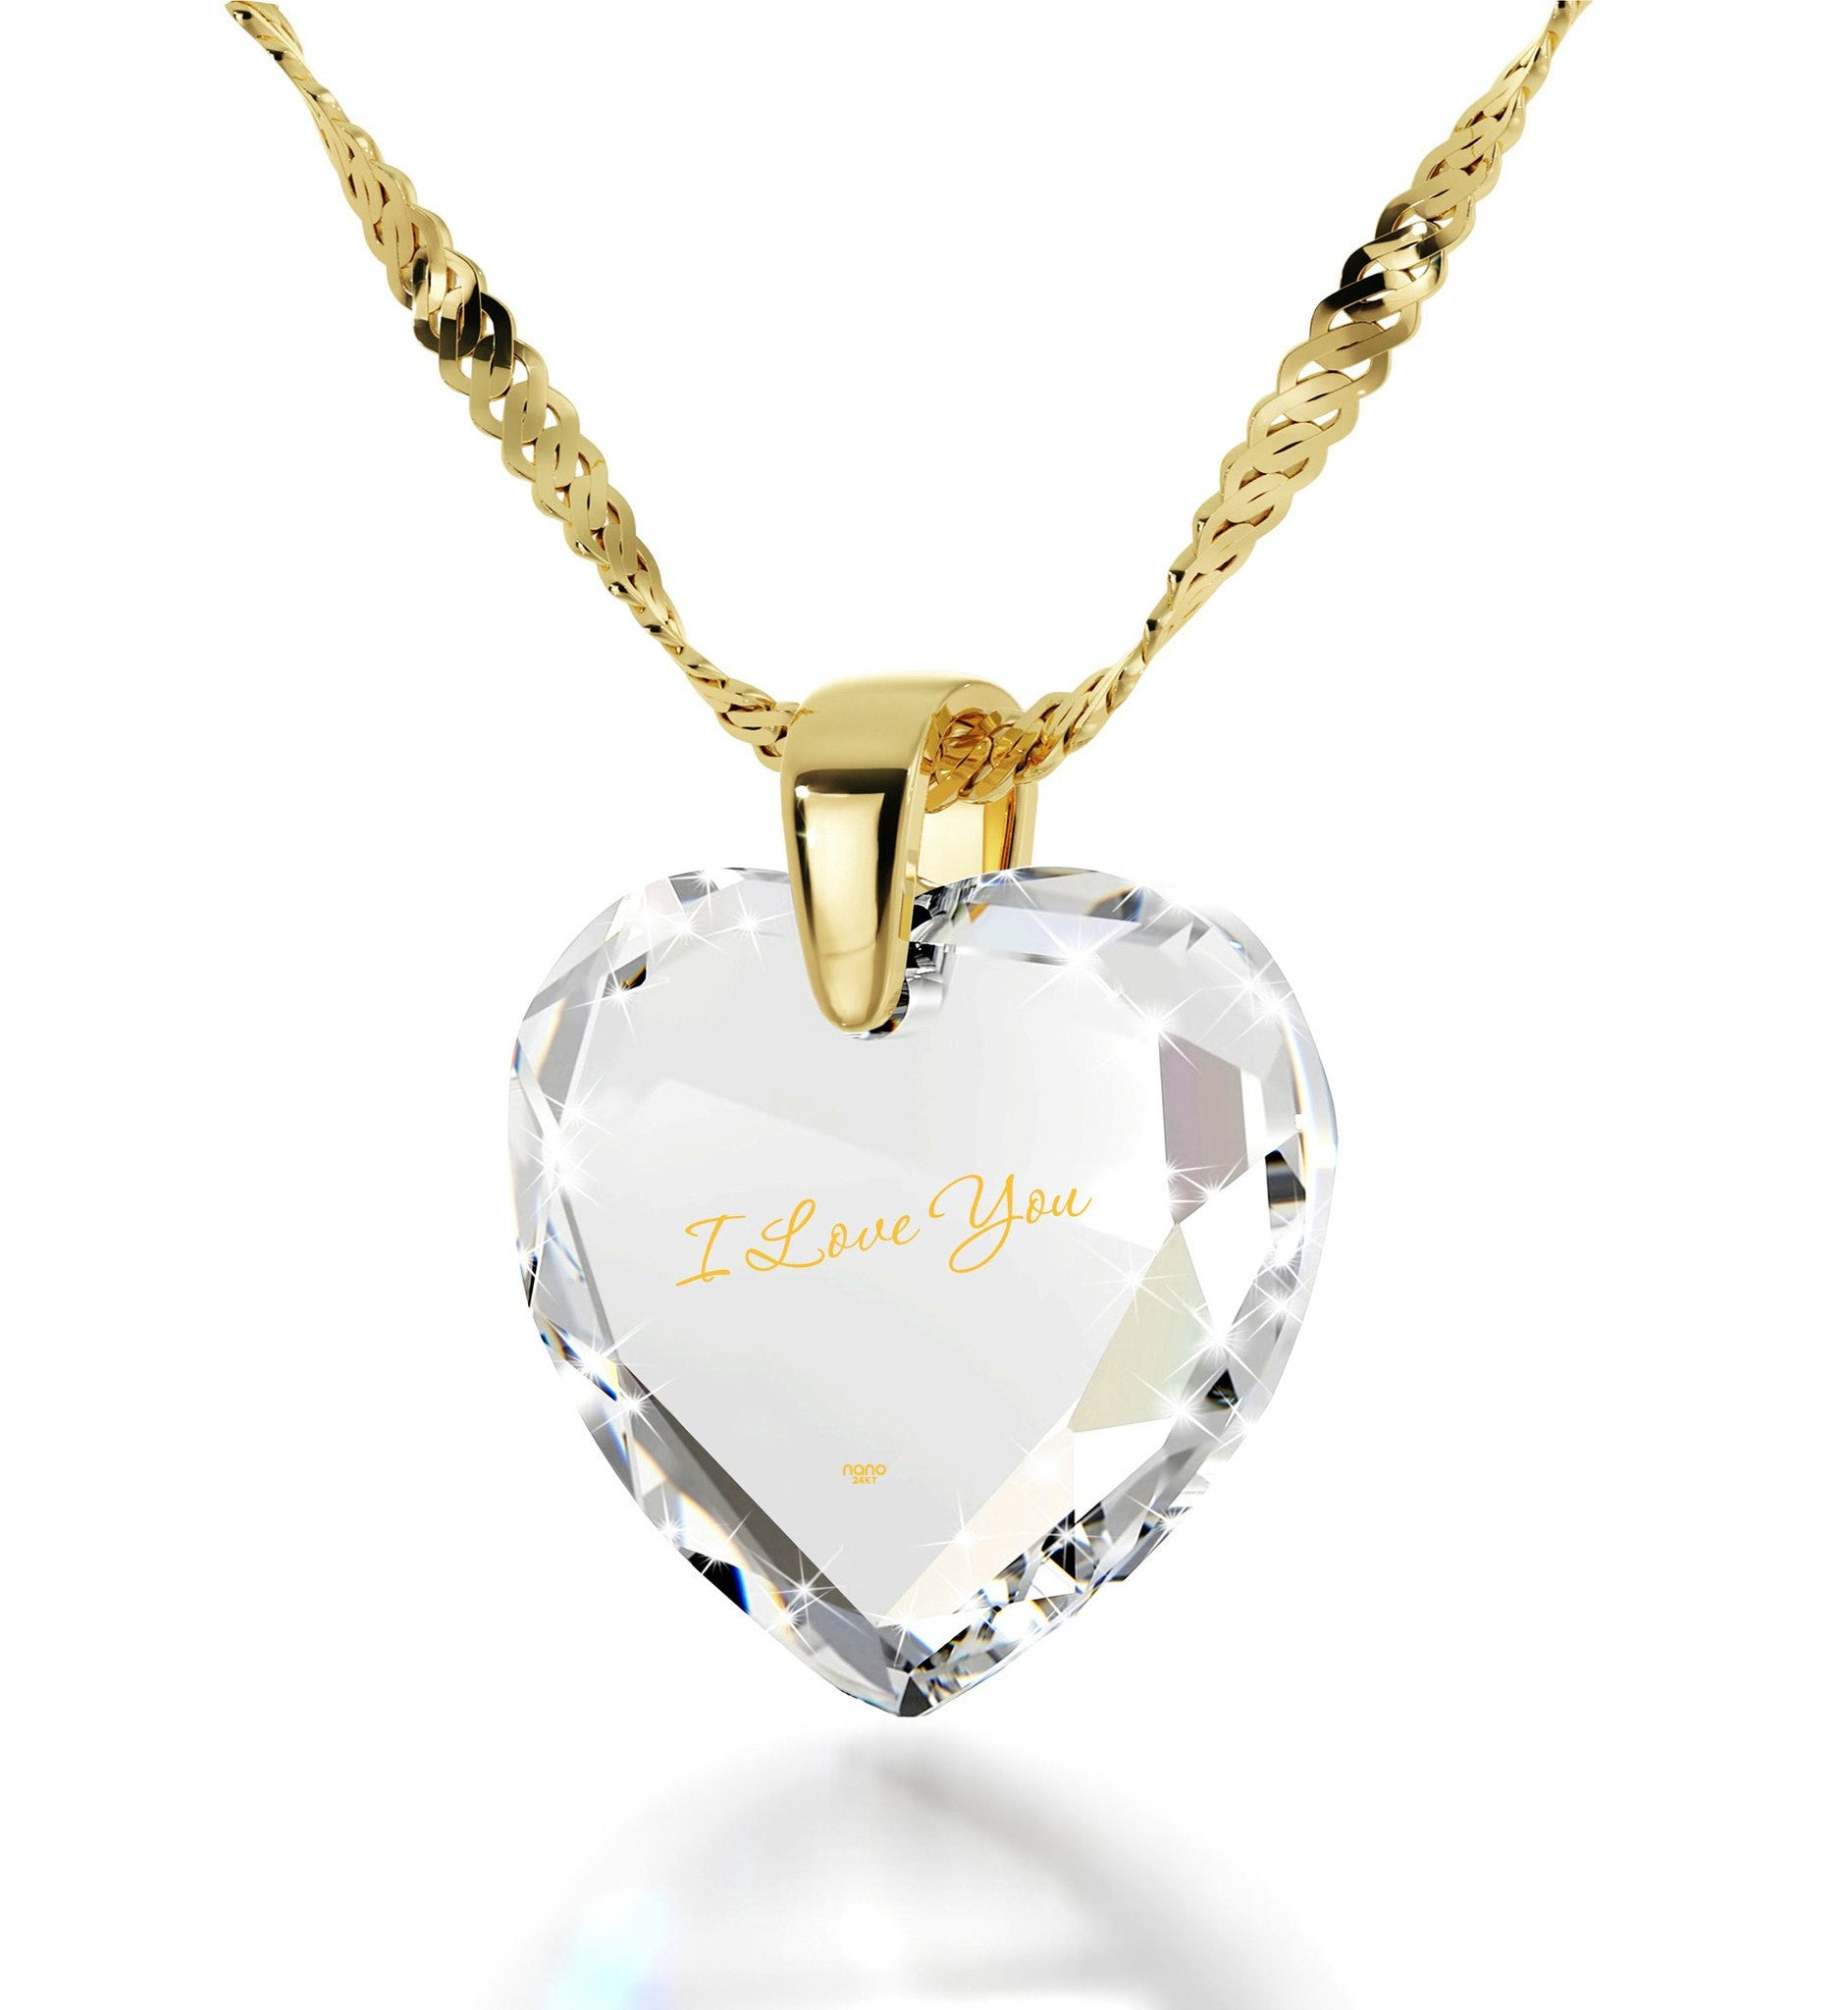 Girlfriend Birthday Ideas, White Heart Stone Gold Plated Necklace, Gifts for Women Friends, by Nano Jewelry